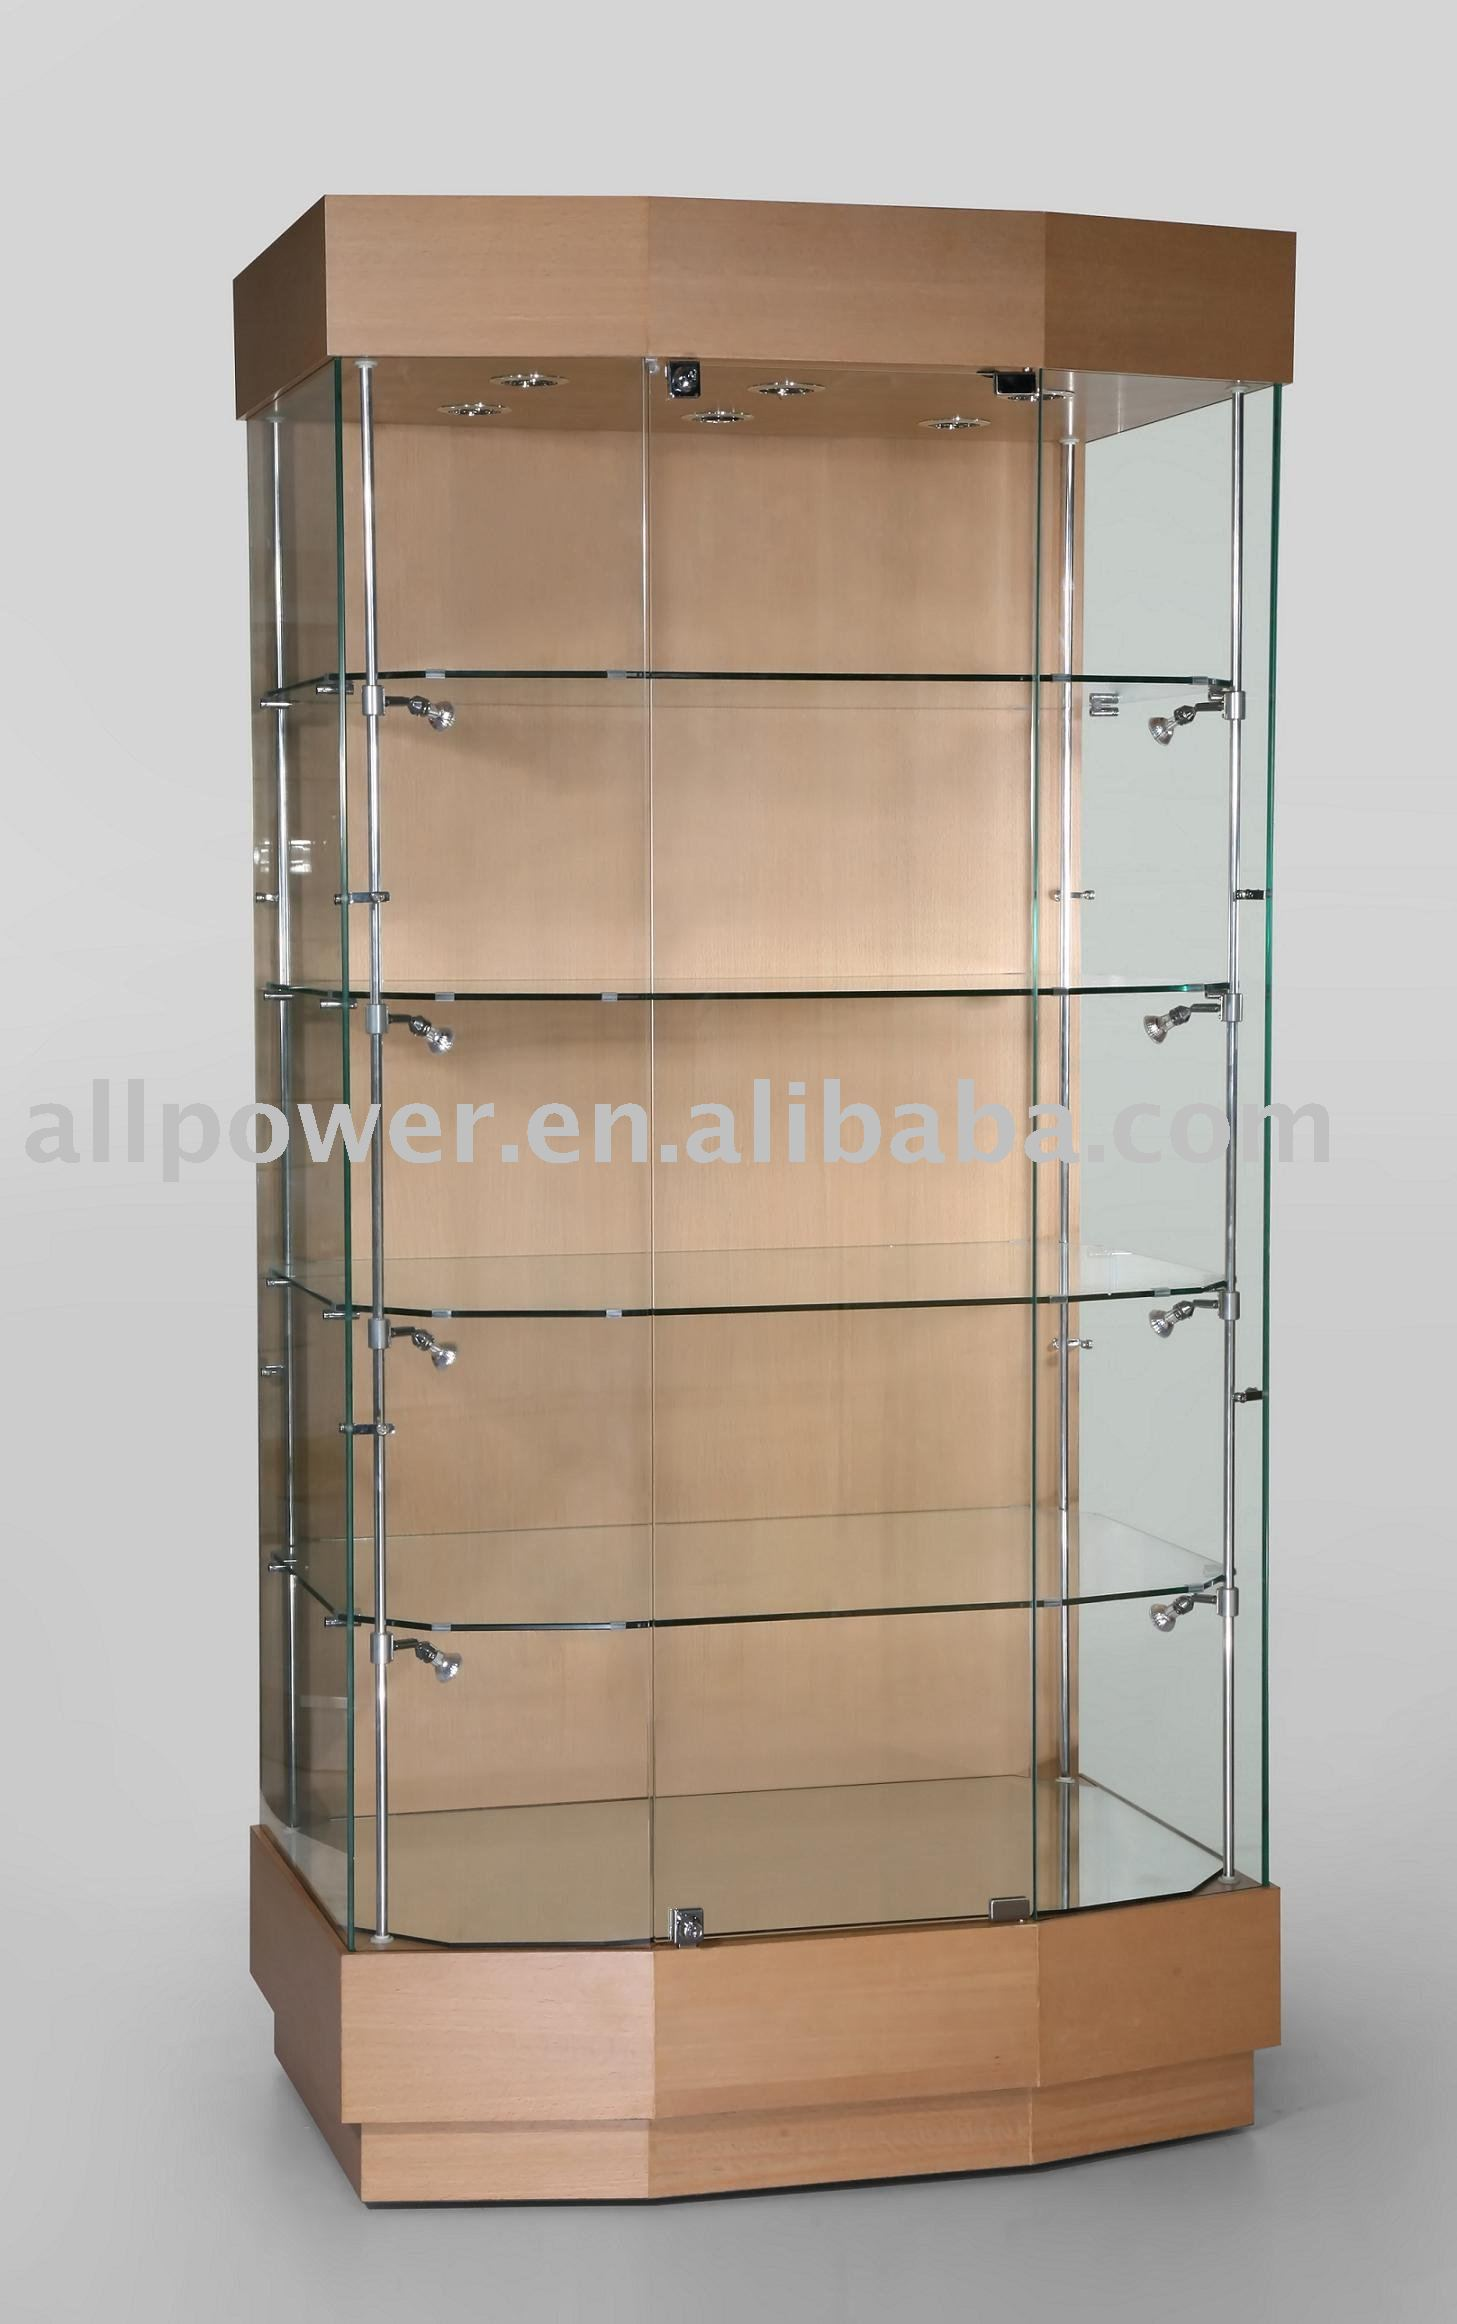 Wooden Floor Jewelry Cabinet Showcase,Tempered Glass Lockable Jewelry  Display Stand   Buy Jewelry Display Stand,Tall Jewelry Stand,Floor Jewelry  ...